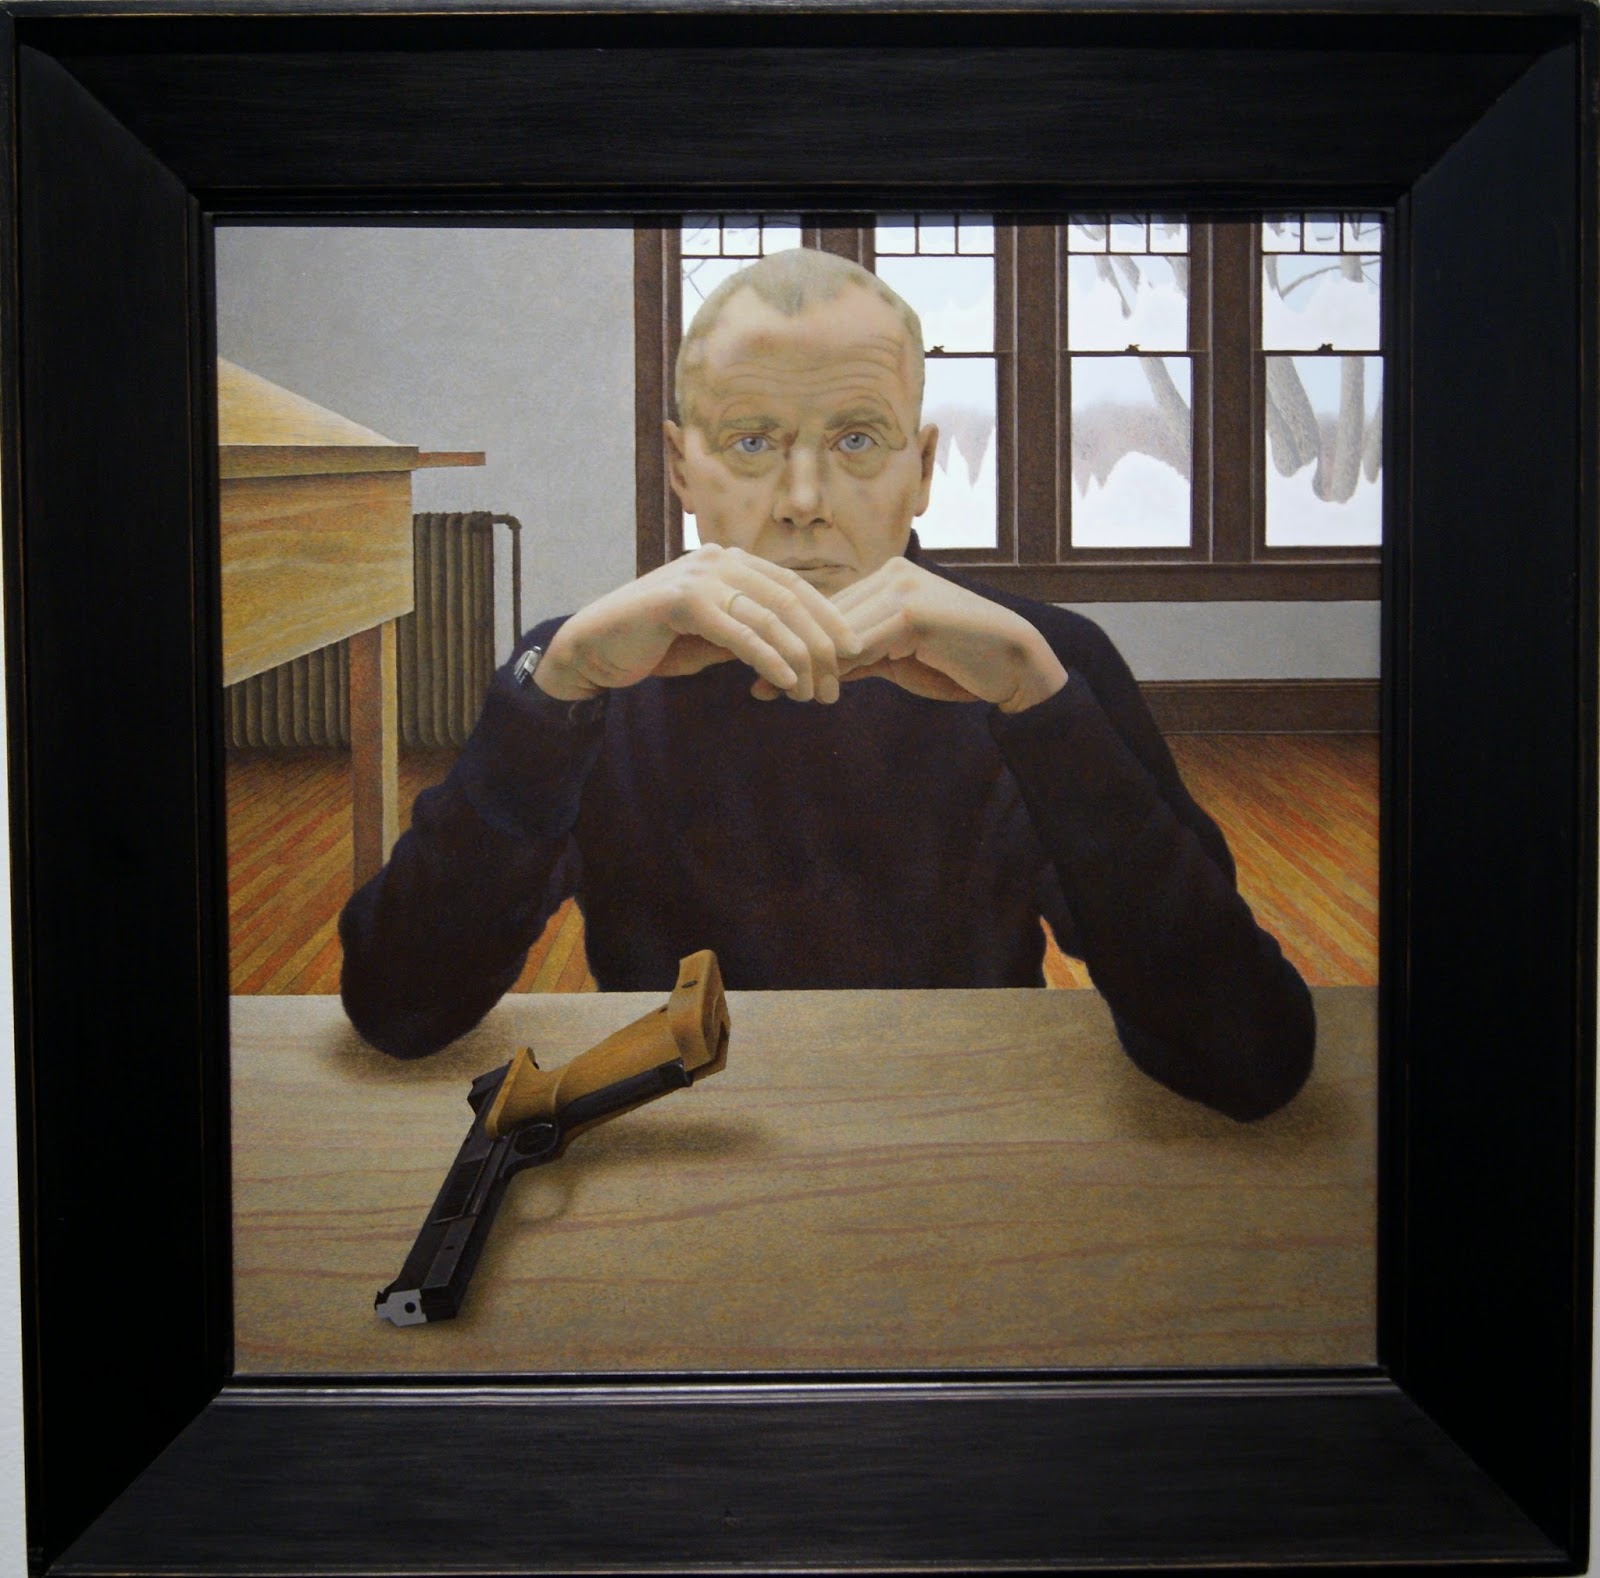 Alex Colville Exhibit at Art Gallery of Ontario in Toronto, Target Pistol and Man, 1980, paintings, art, artmatters, culture,ontario, Canadian Artist, Painter, Canada